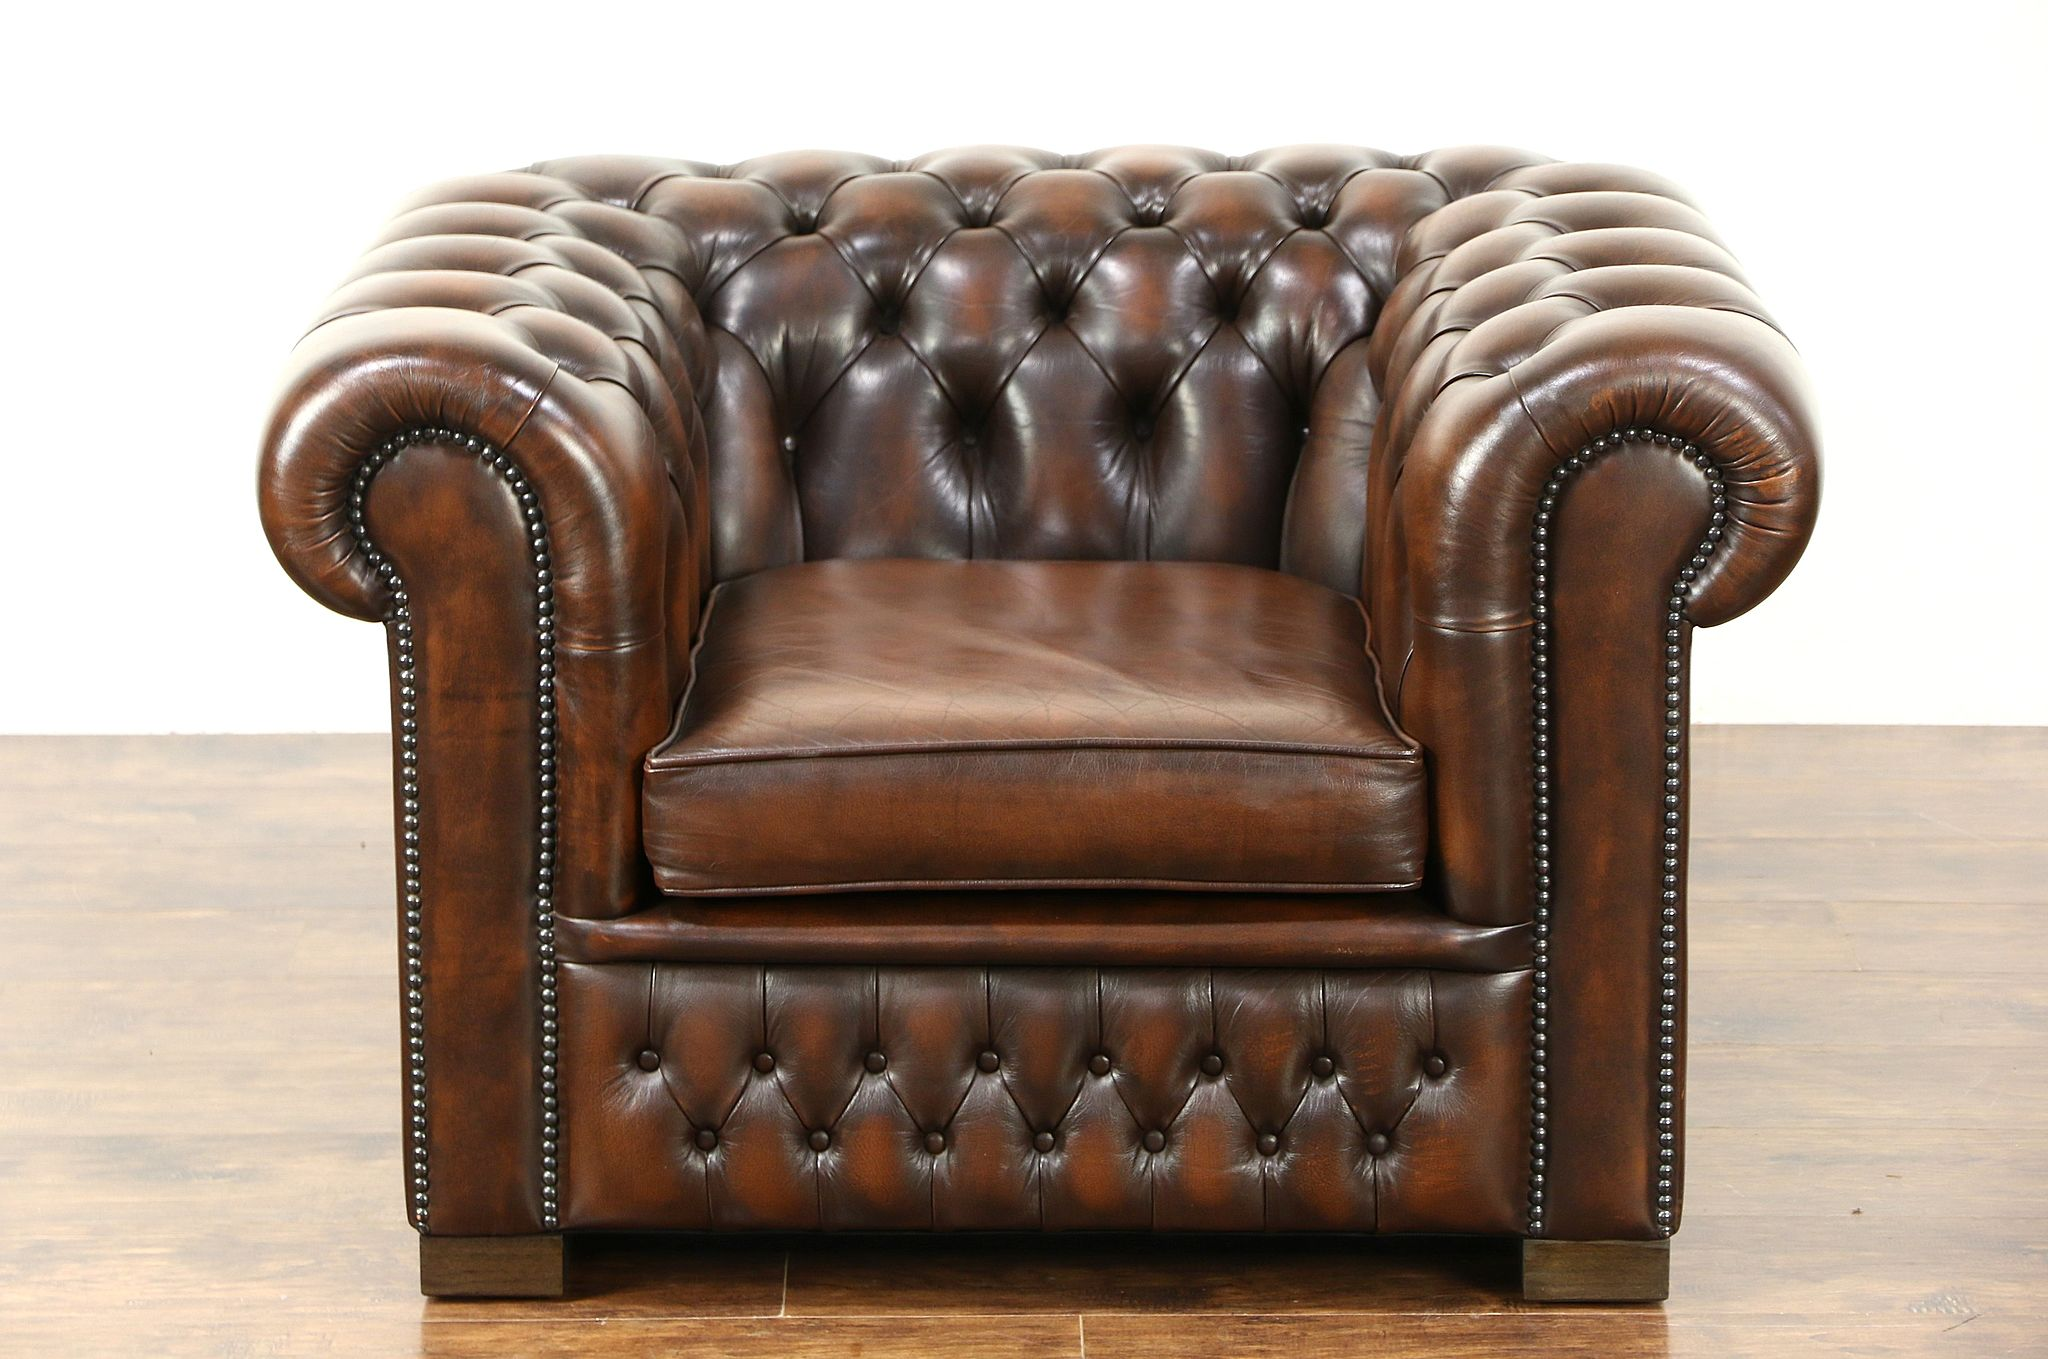 SOLD - Chesterfield Tufted Brown Leather Vintage Scandinavian Tub ...